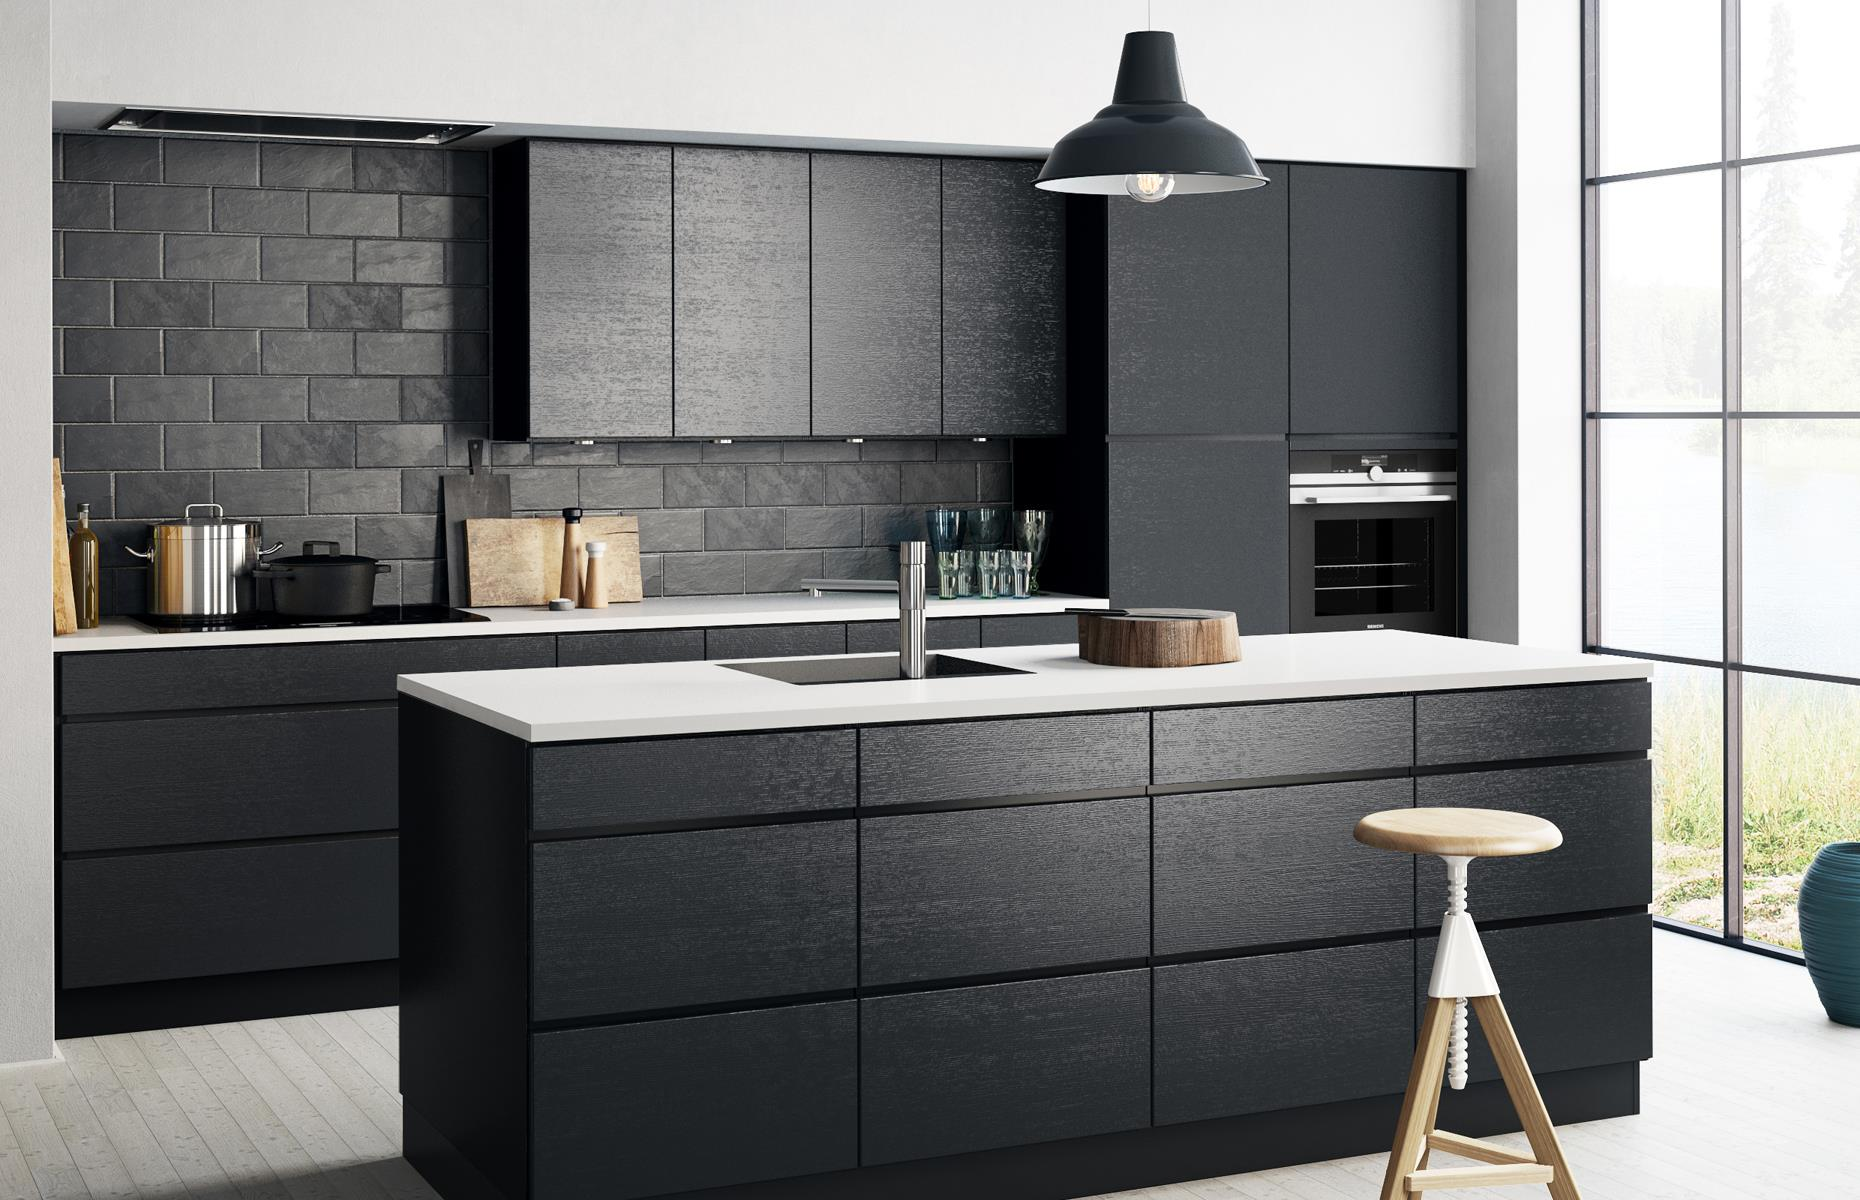 Black kitchen white countertop